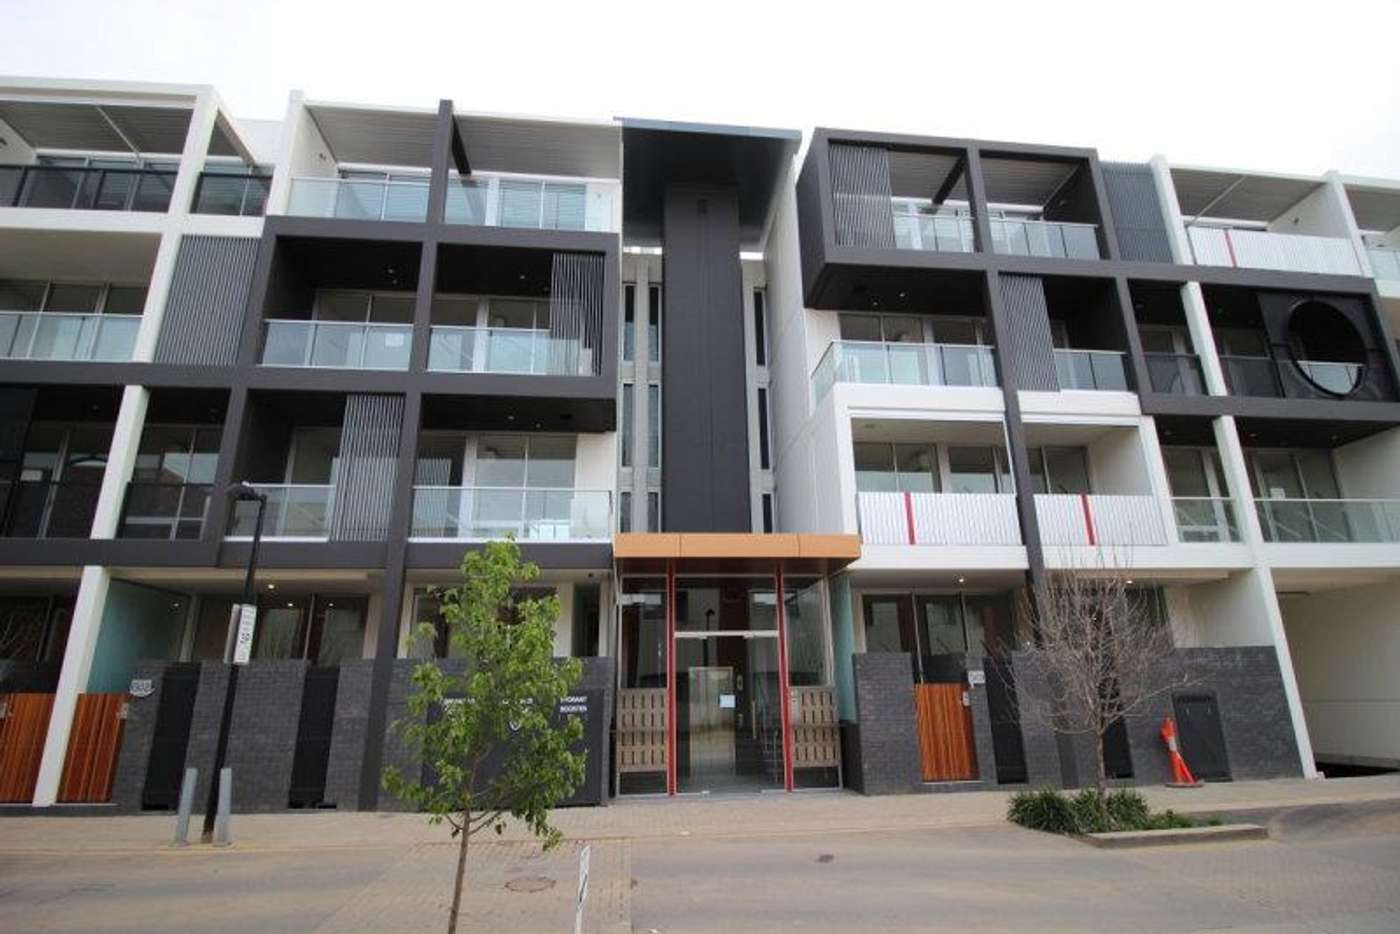 Main view of Homely apartment listing, Apartment 104/46 Sixth Street, Bowden SA 5007